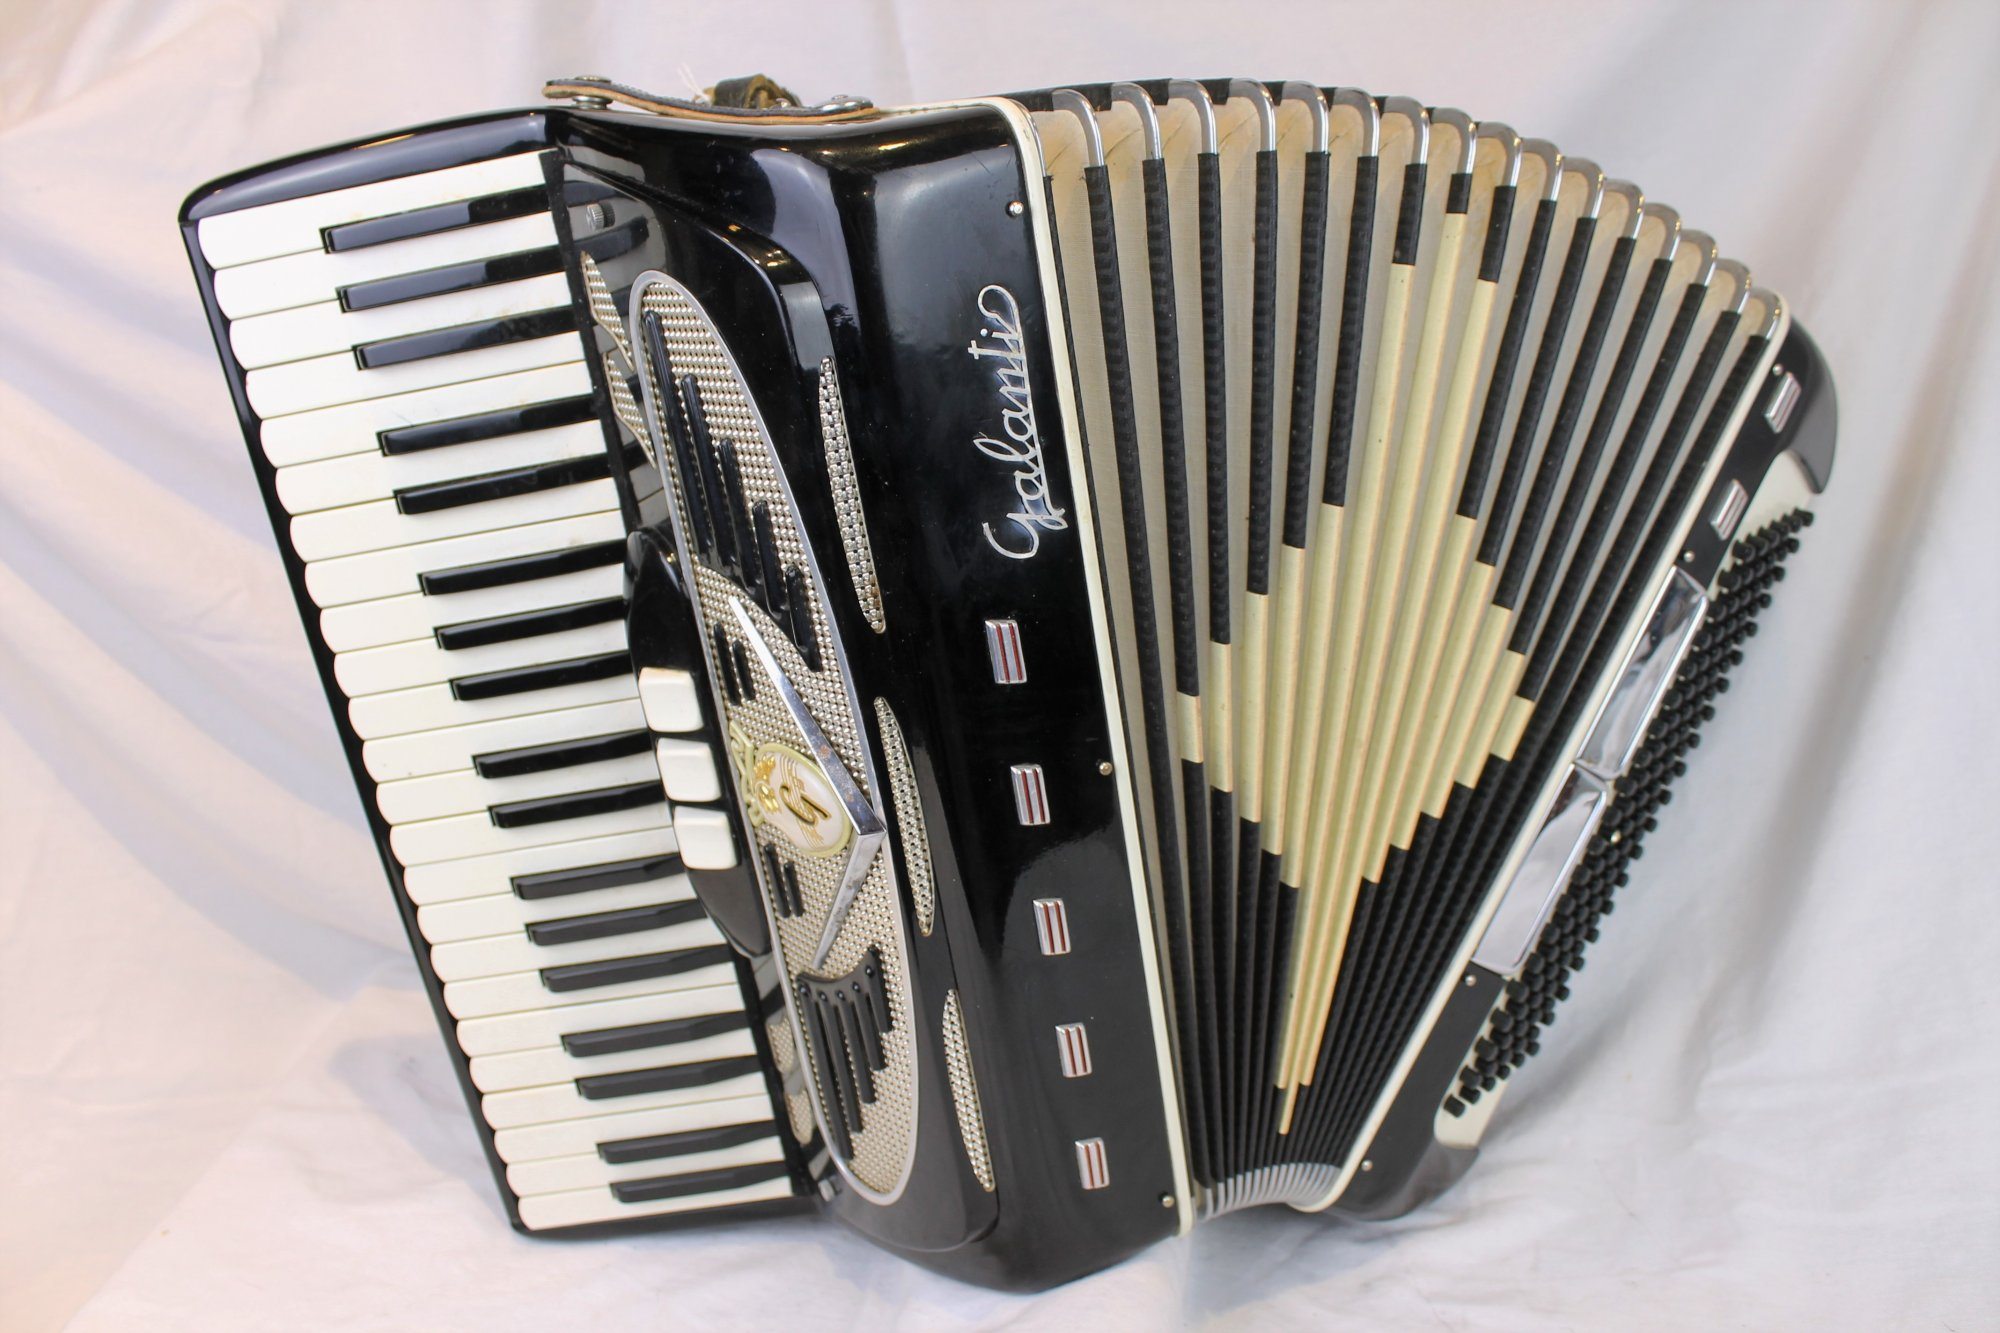 6020 - Black Galanti Piano Accordion LM 41 120